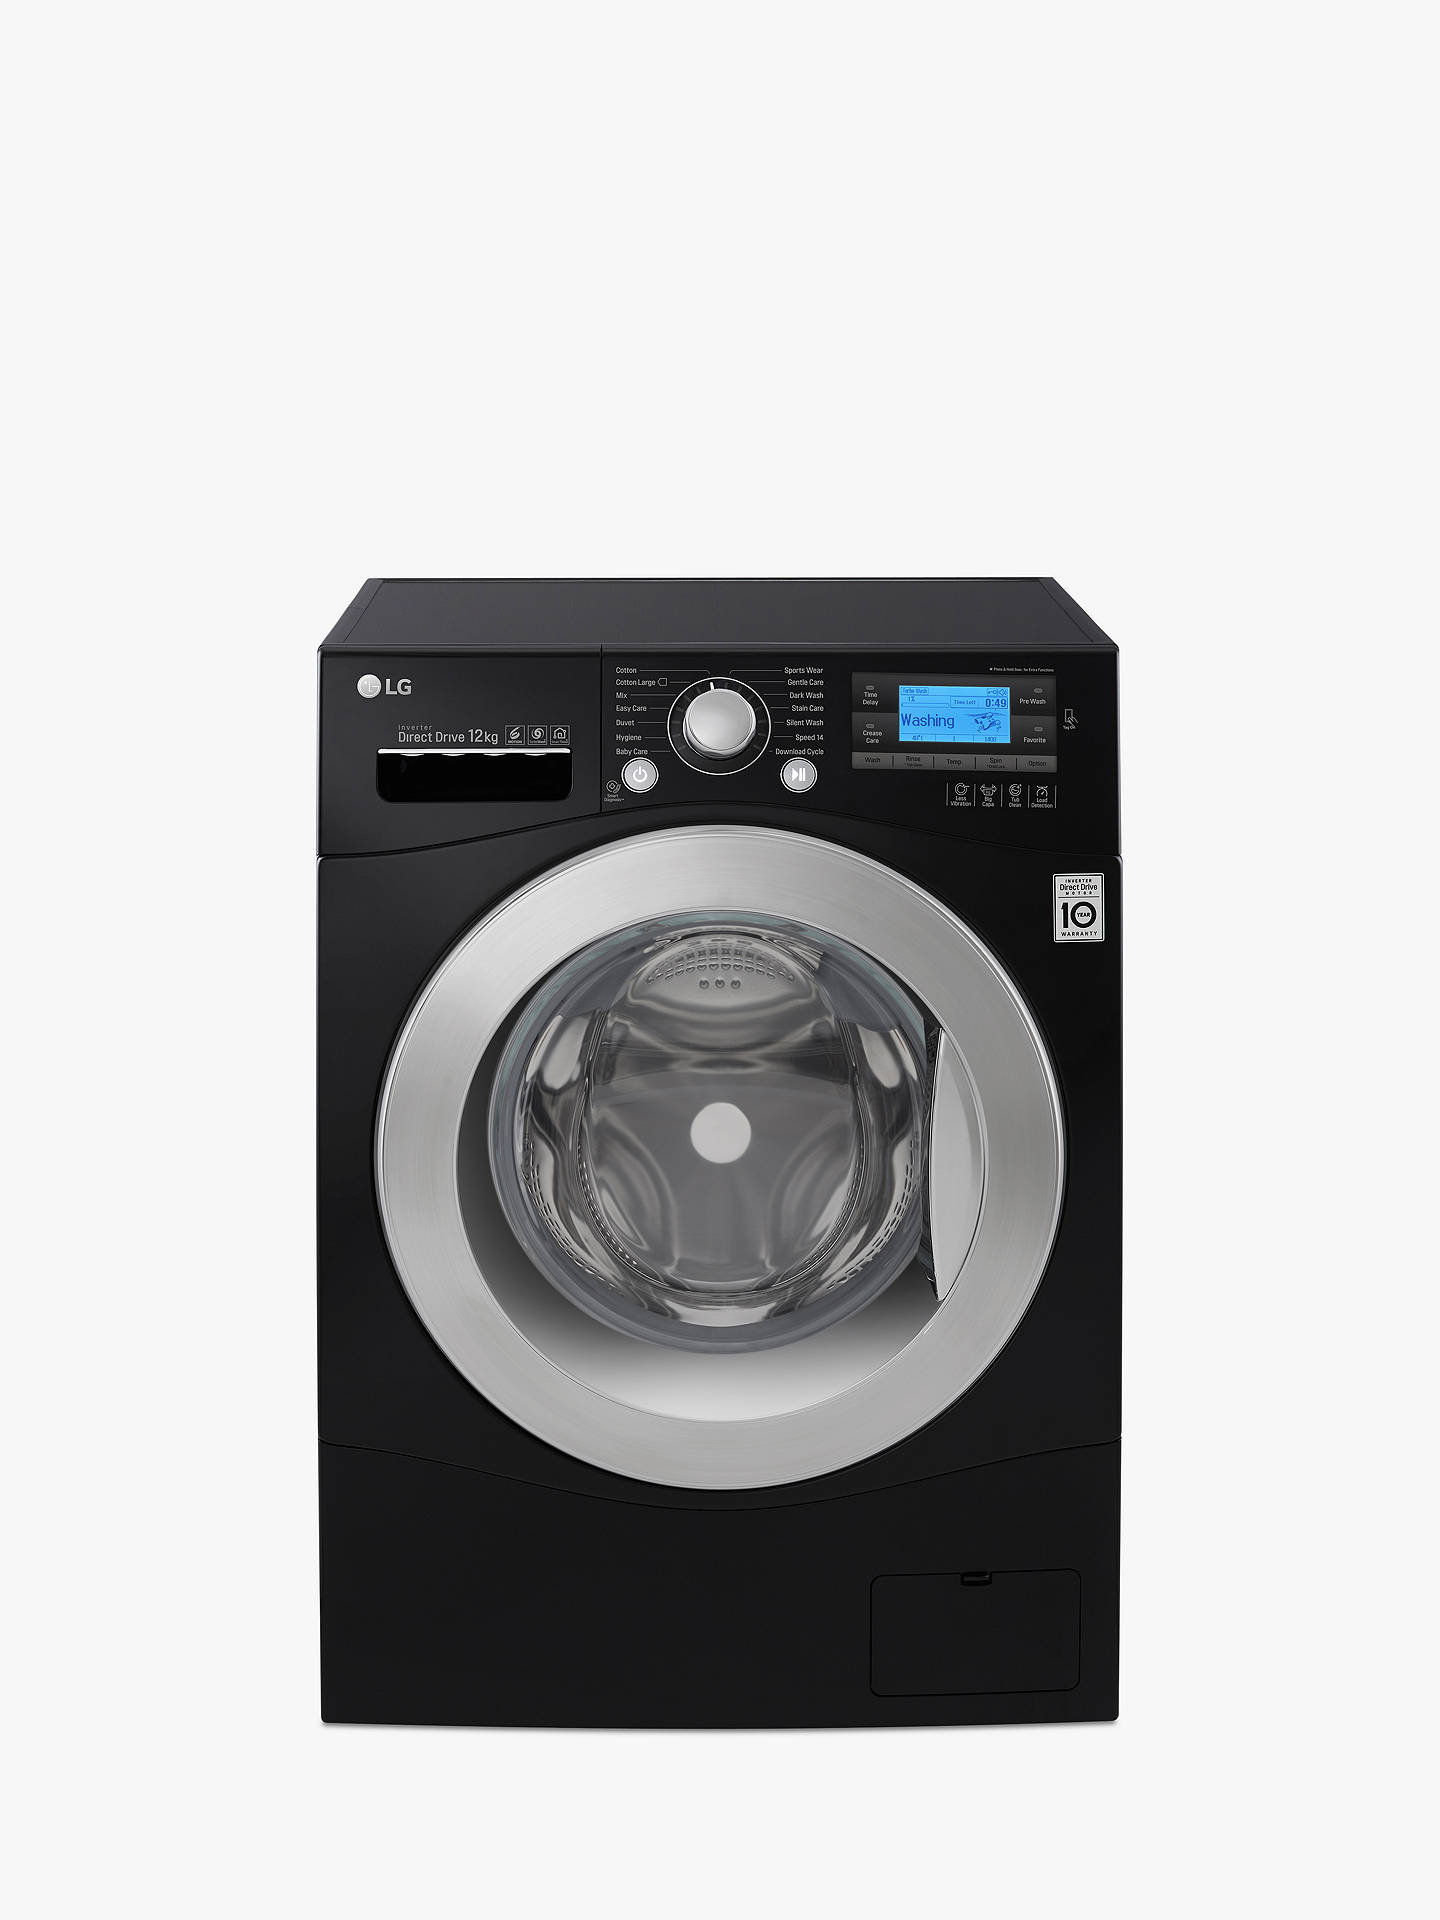 LG FH495BDN8 Freestanding Washing Machine, 12kg Load, A+++ Energy Rating,  1400rpm Spin, Black